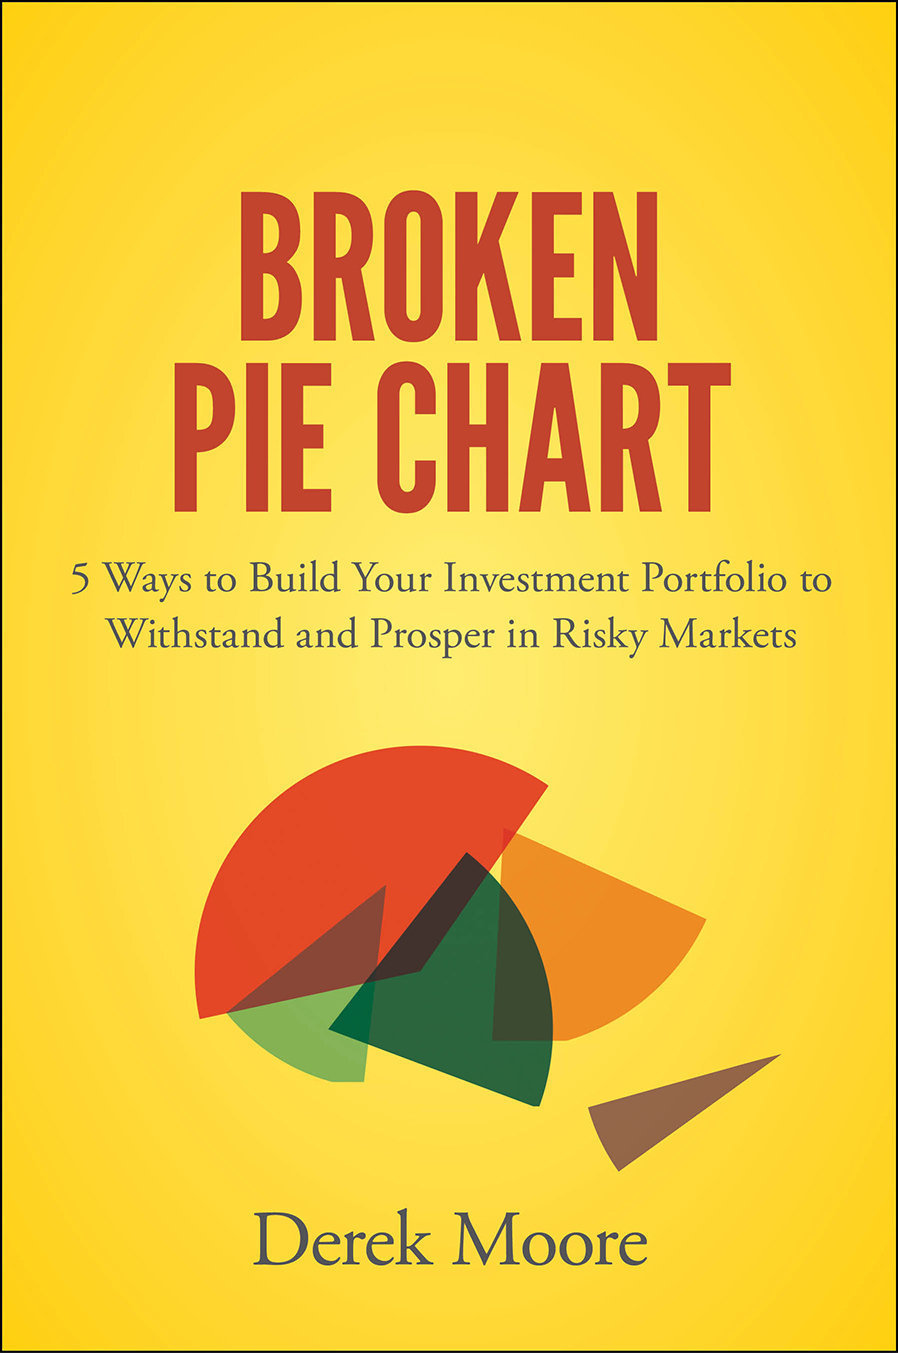 Broken Pie Chart: 5 Ways to Build Your Investment Portfolio to Withstand and Prosper in Risky Markets - Finances